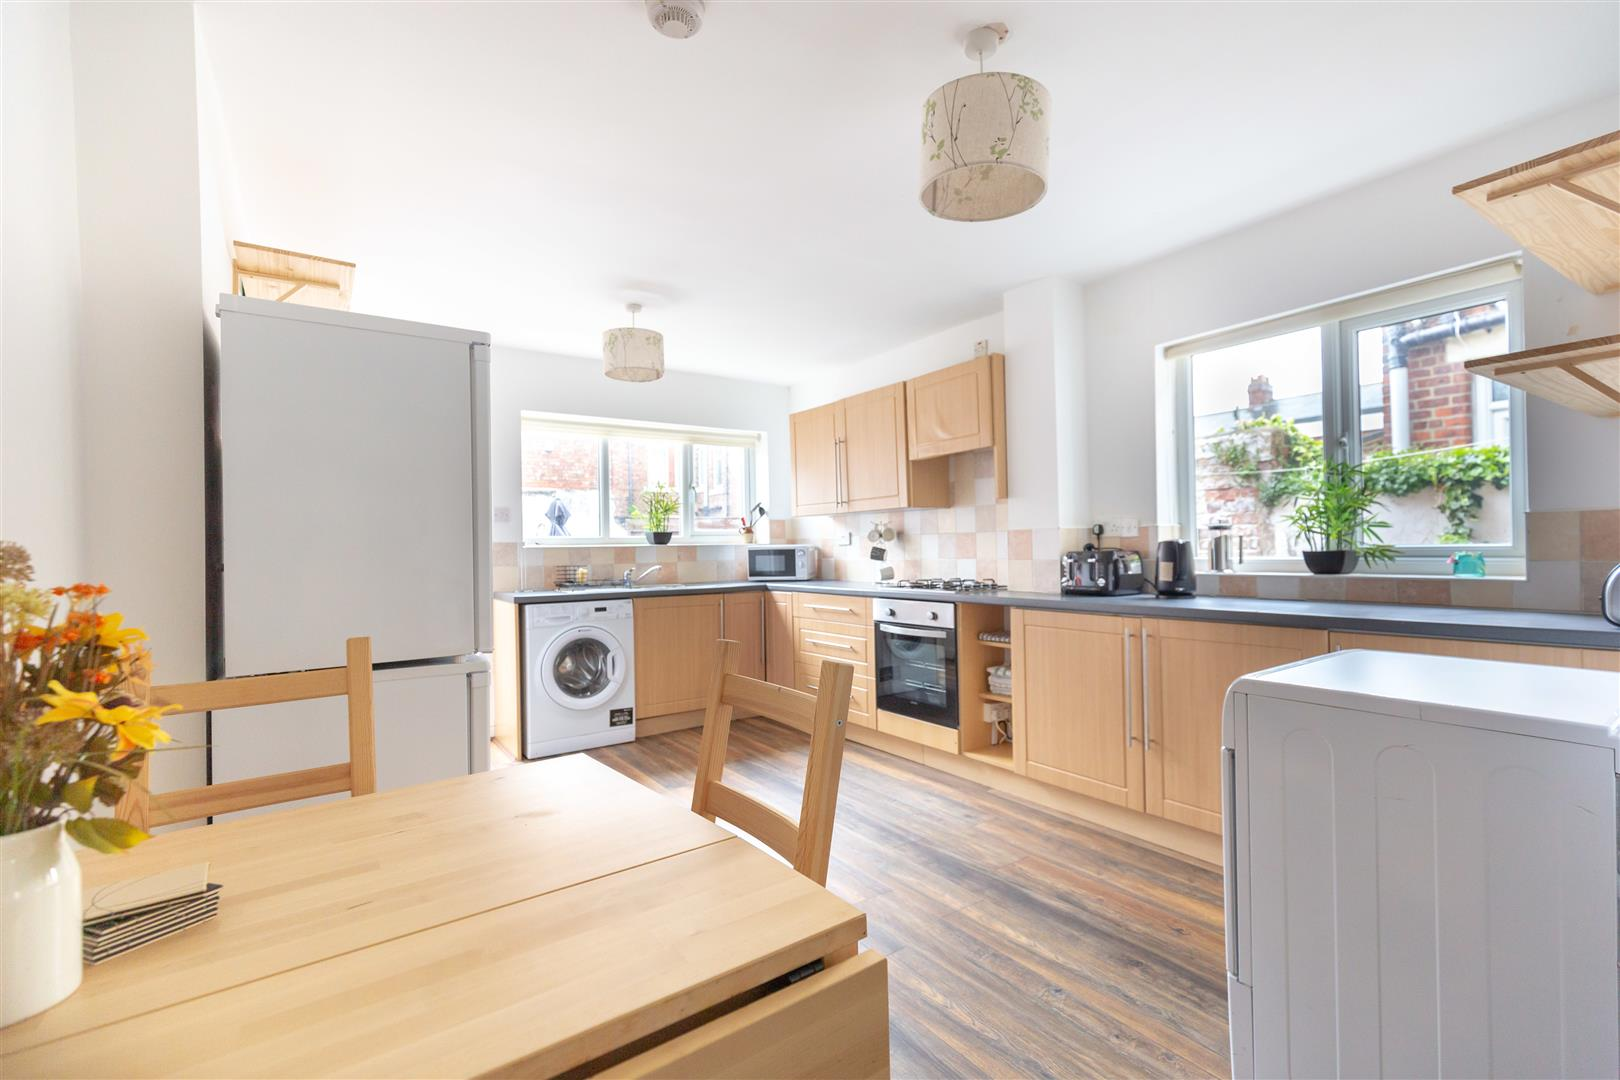 6 bed terraced house to rent in Newcastle Upon Tyne, NE6 5LR  - Property Image 4